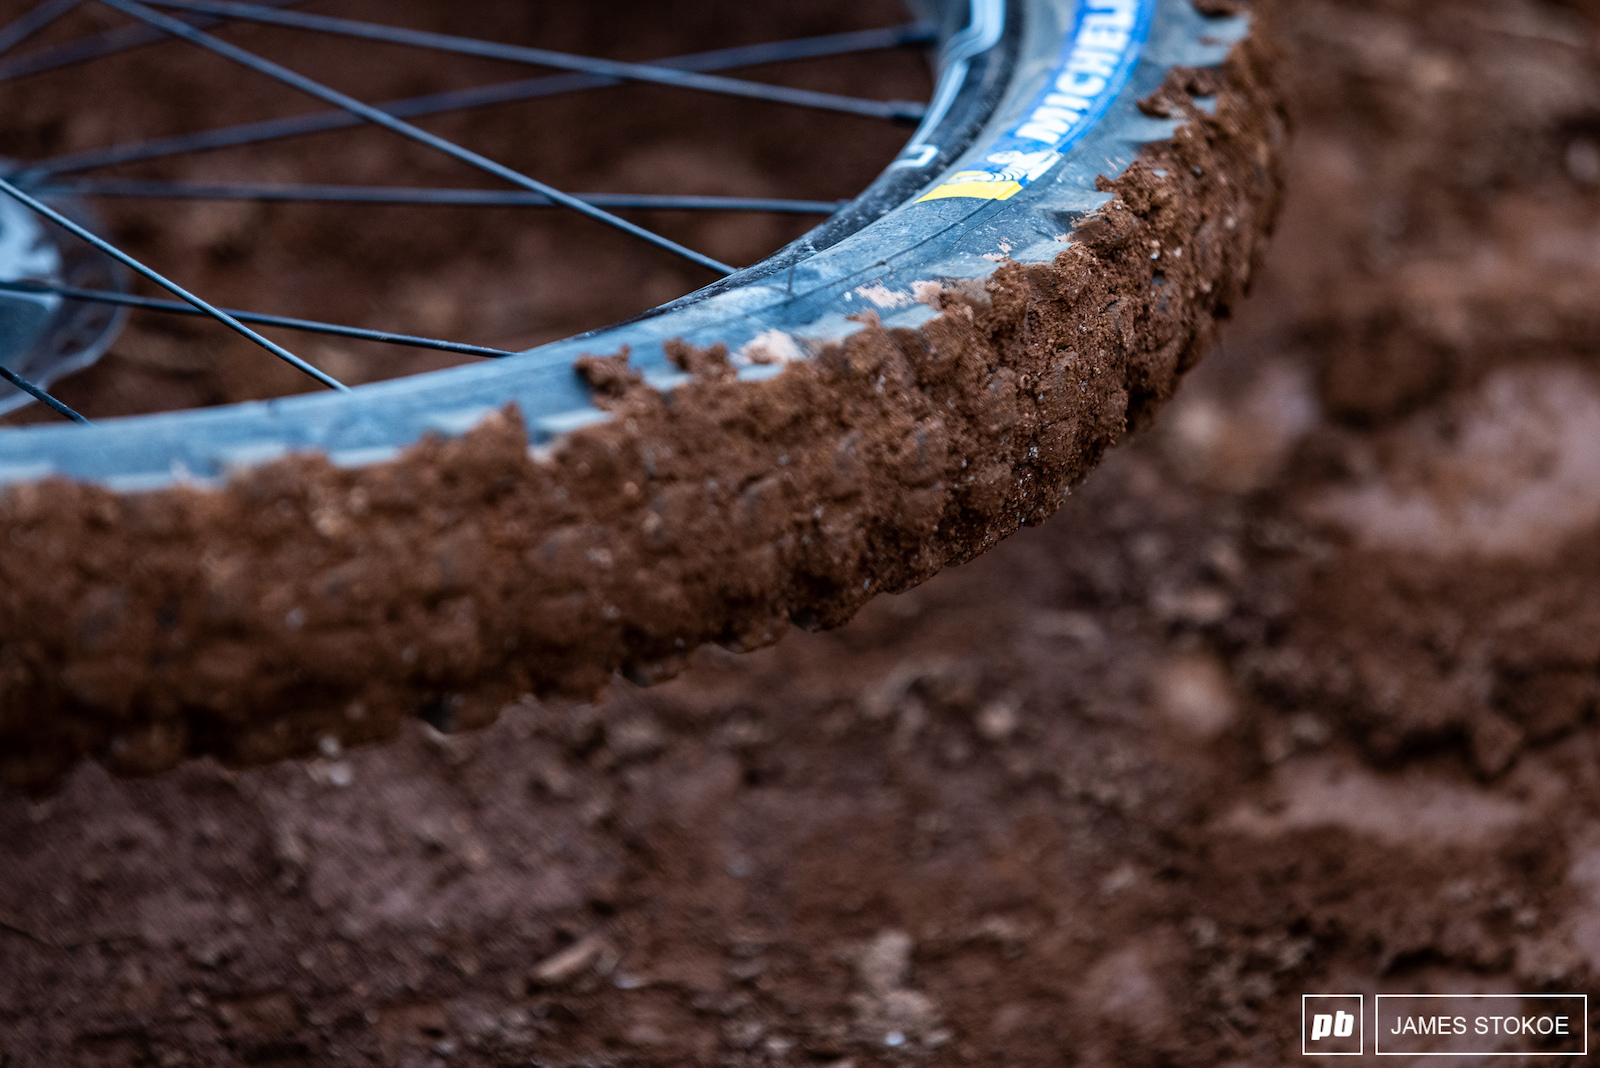 Obligatory shot to show the condition of the dirt onsite as displayed on Zink s wheel in an artsy fartsy way.